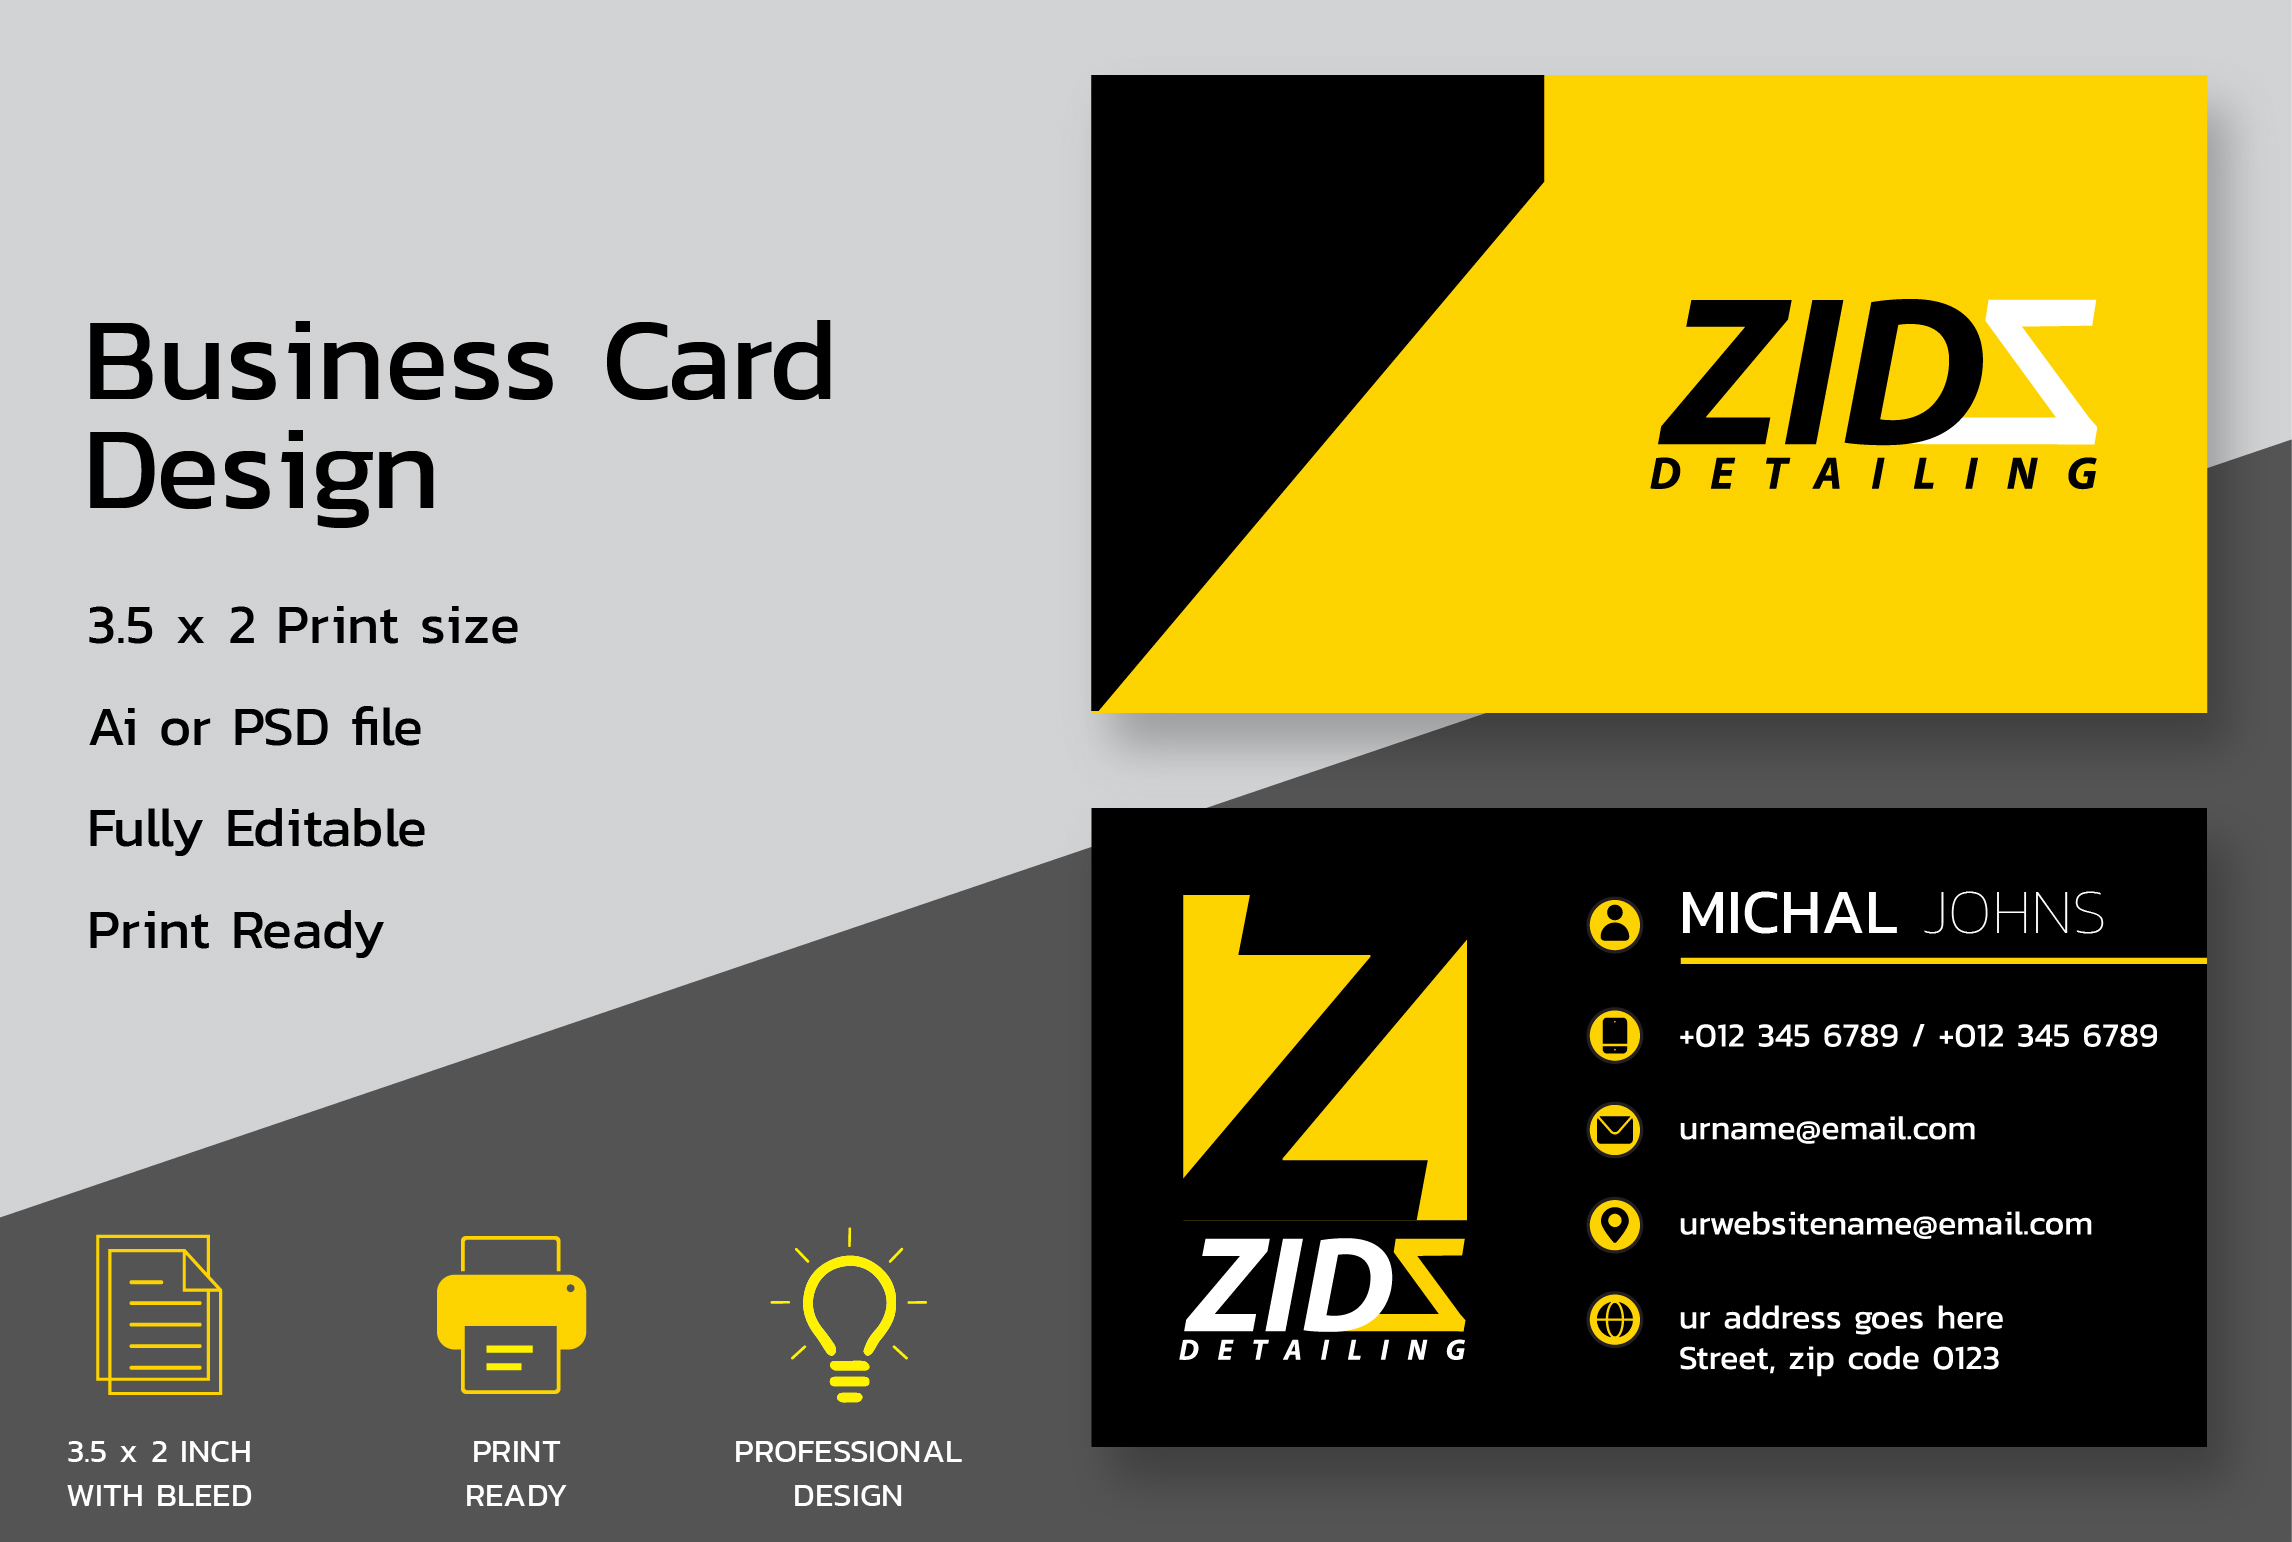 I will create professional business card design ready for print